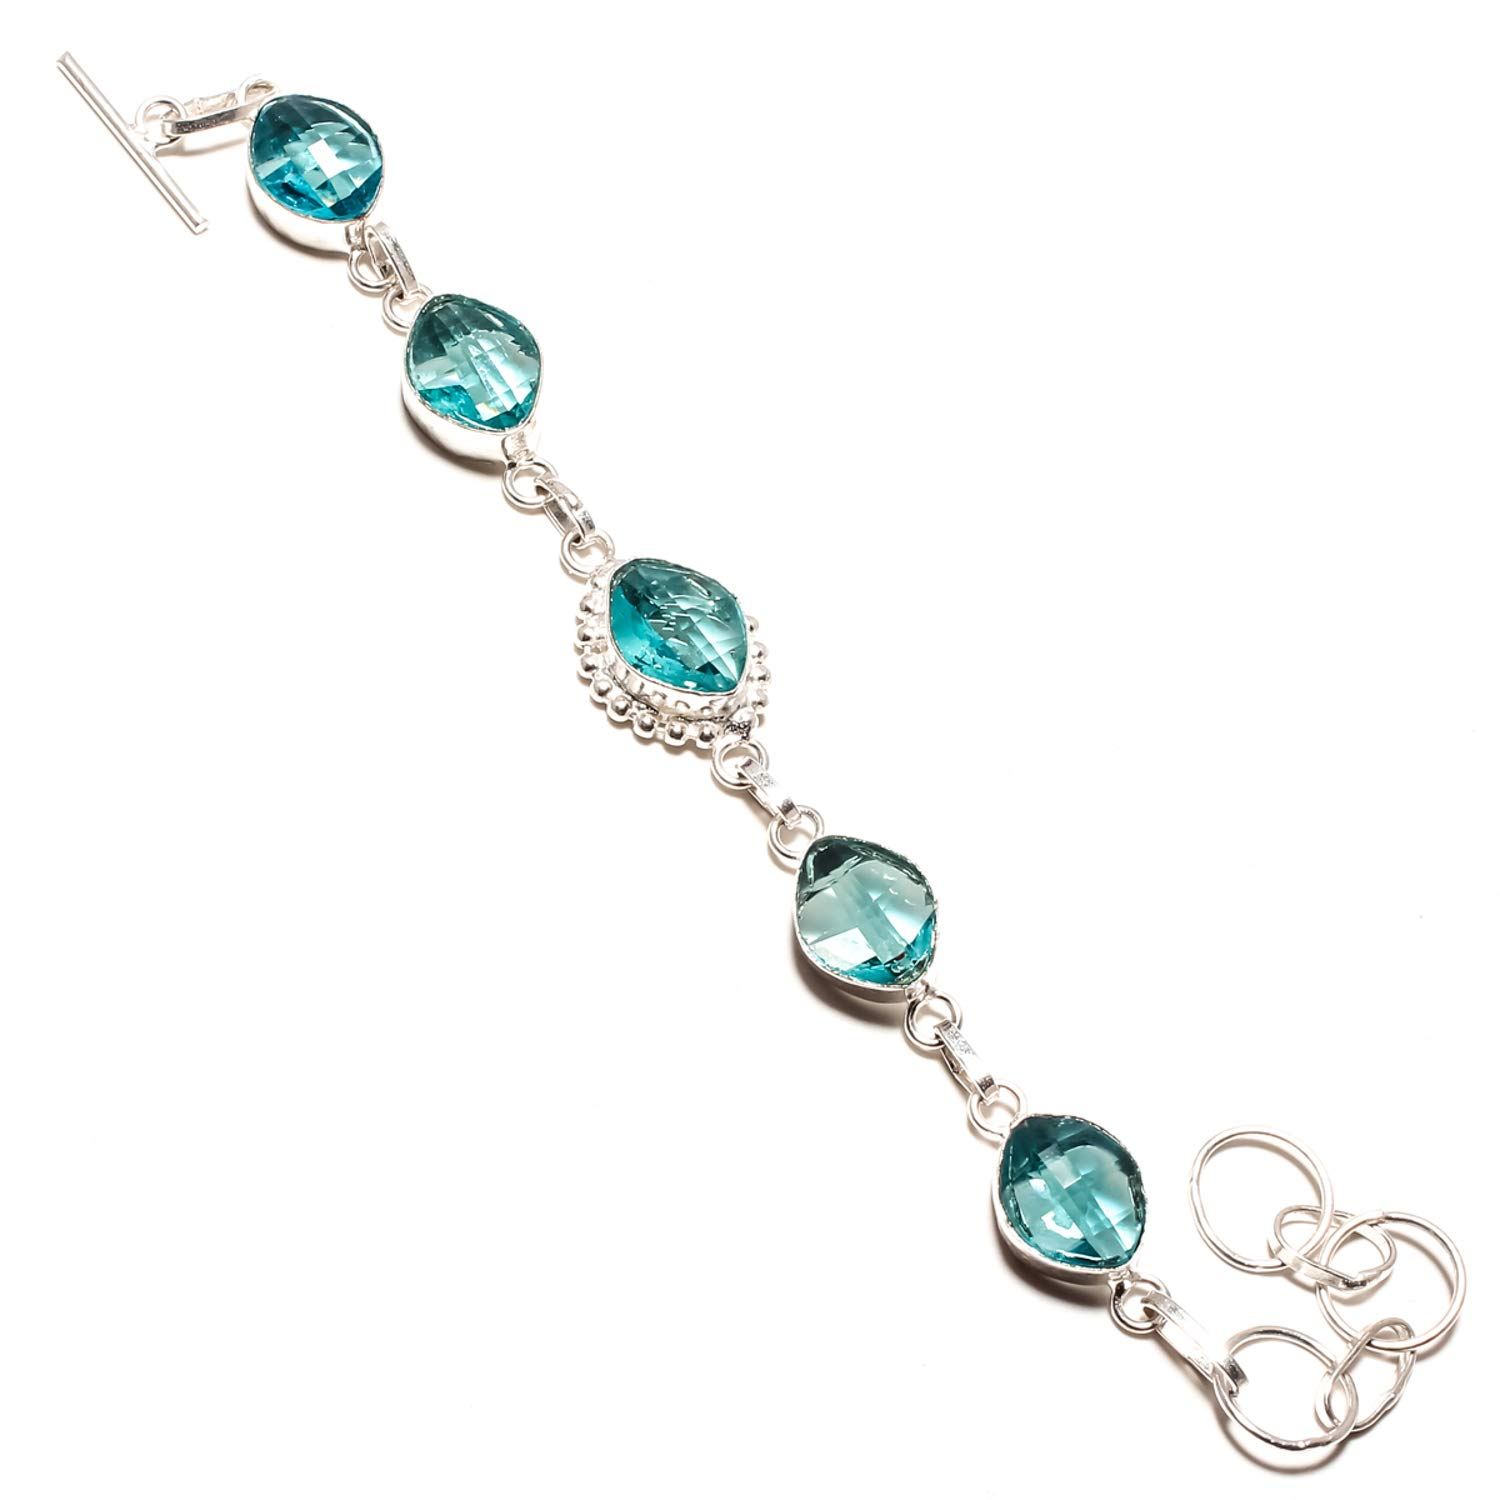 SF-1206 Amazing Faceted Blue Topaz Gemstone Bracelet Handmade 925 Sterling Silver Plated Jewelry Adjustable and Flexible Length-Link Chain Bracelet